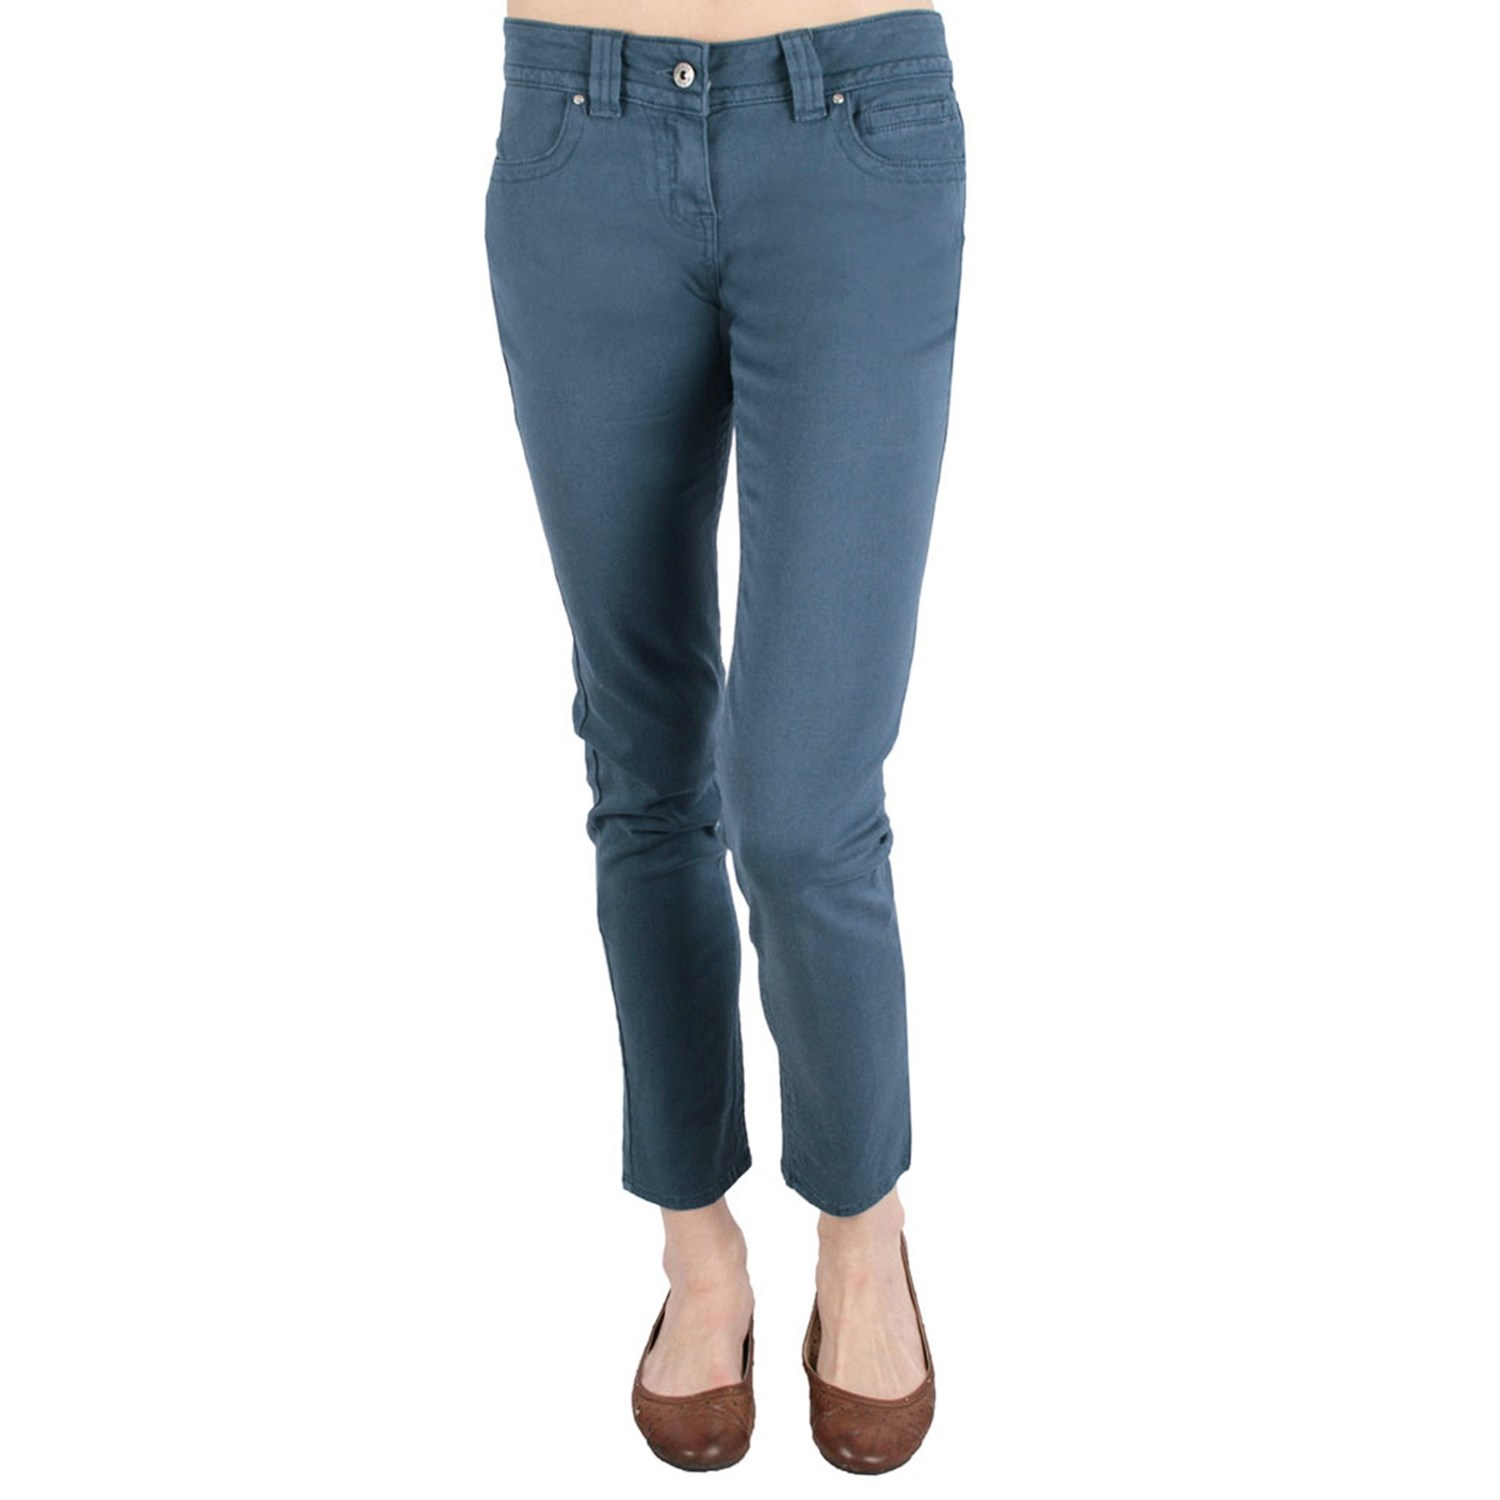 Free shipping and returns on Women's Colorful Skinny Jeans at trickytrydown2.tk